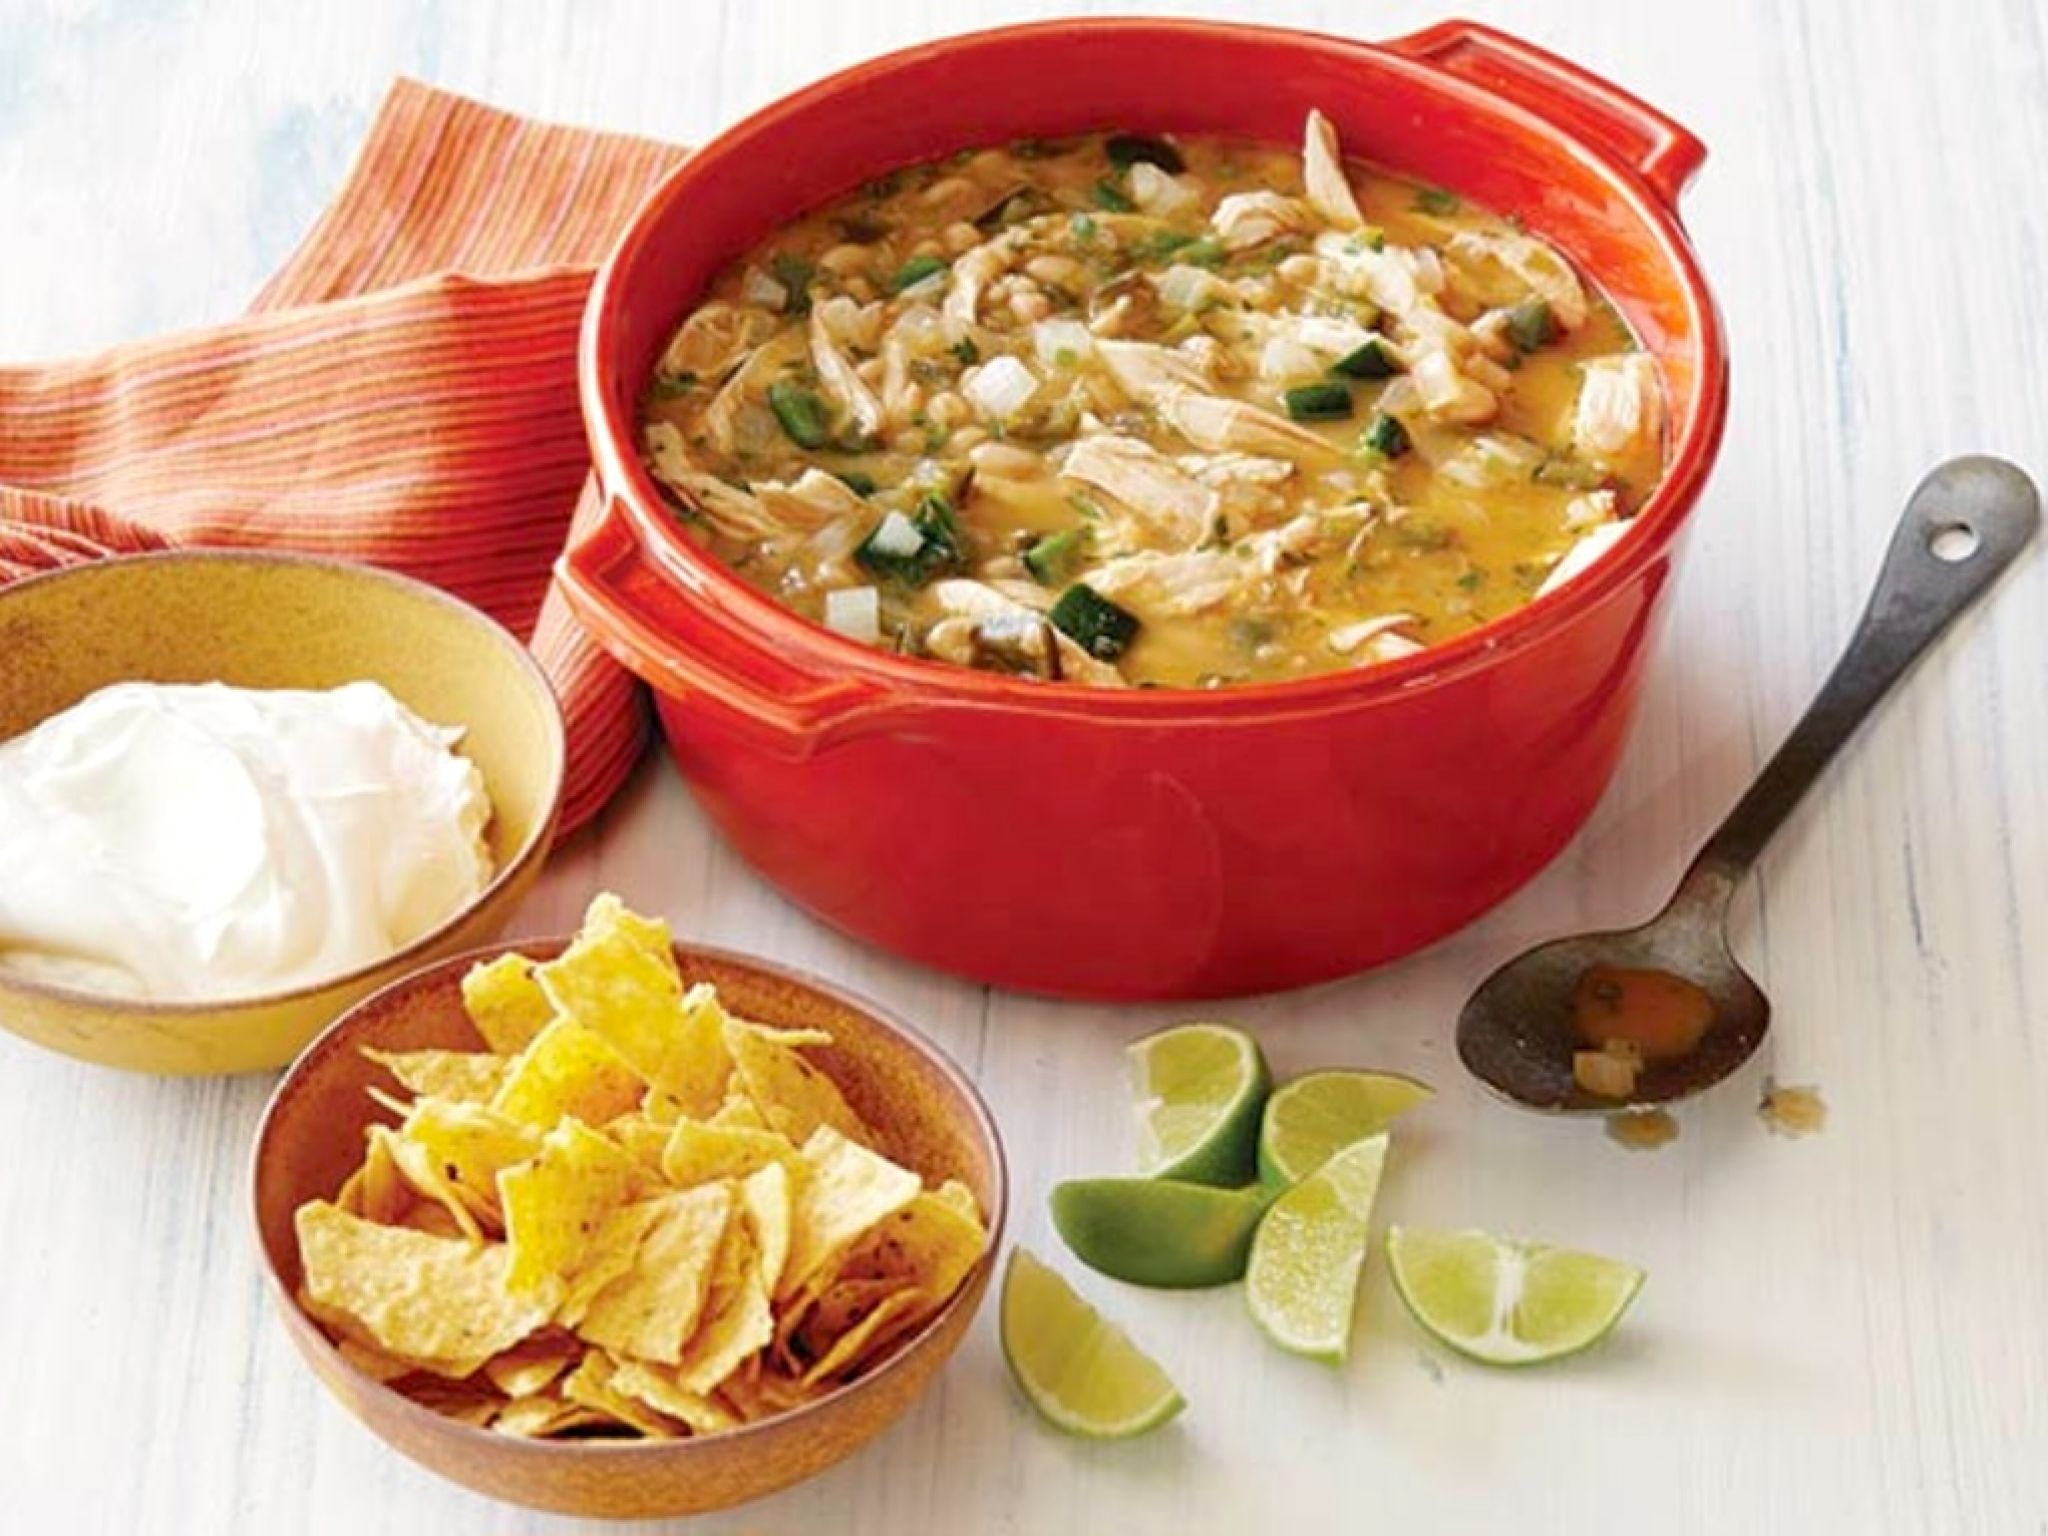 My favorite Healthy Mexican Chicken Chili Recipe is super fast to prep and full of flavor. Originally inspired by Dave Lieberman's Mexican Chicken Stew, I've made it even better!